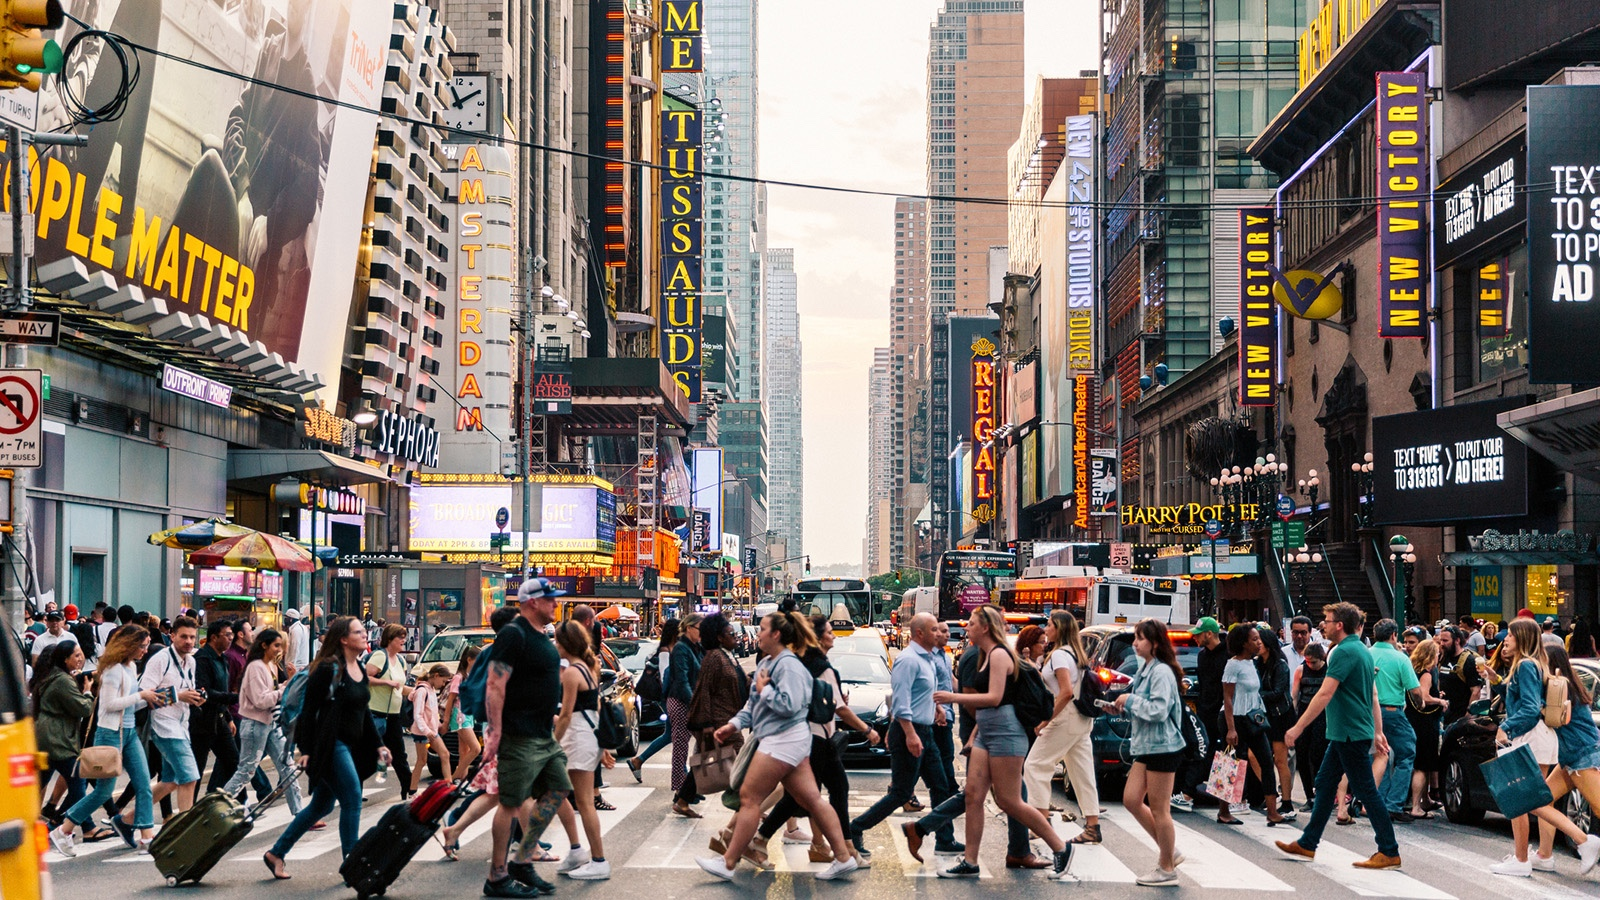 crowd of people in New York city